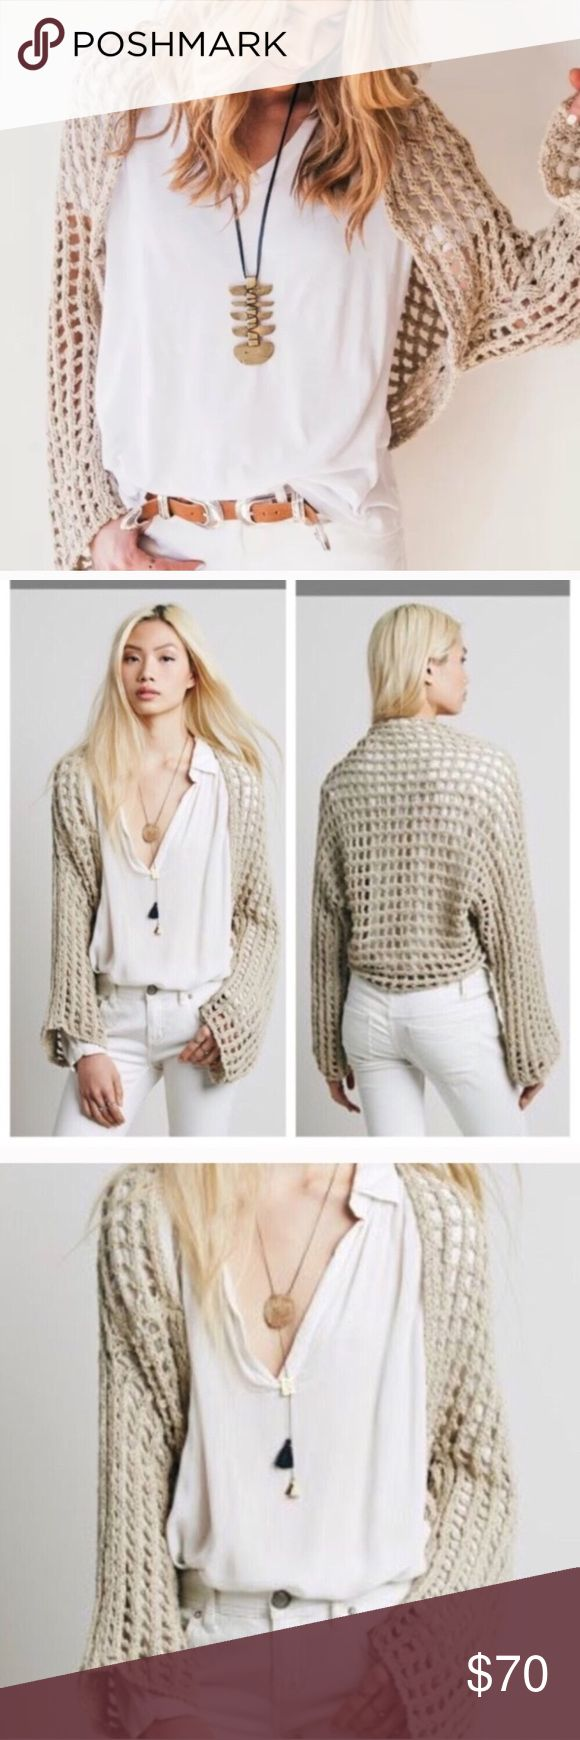 Free People Trinity Grey Shrug Sweater Small Free People Trinity Grey Shrug Sweater Crochet Bolero Shrug Size Small, brand new with tags- retail $98🌟 Free People Sweaters